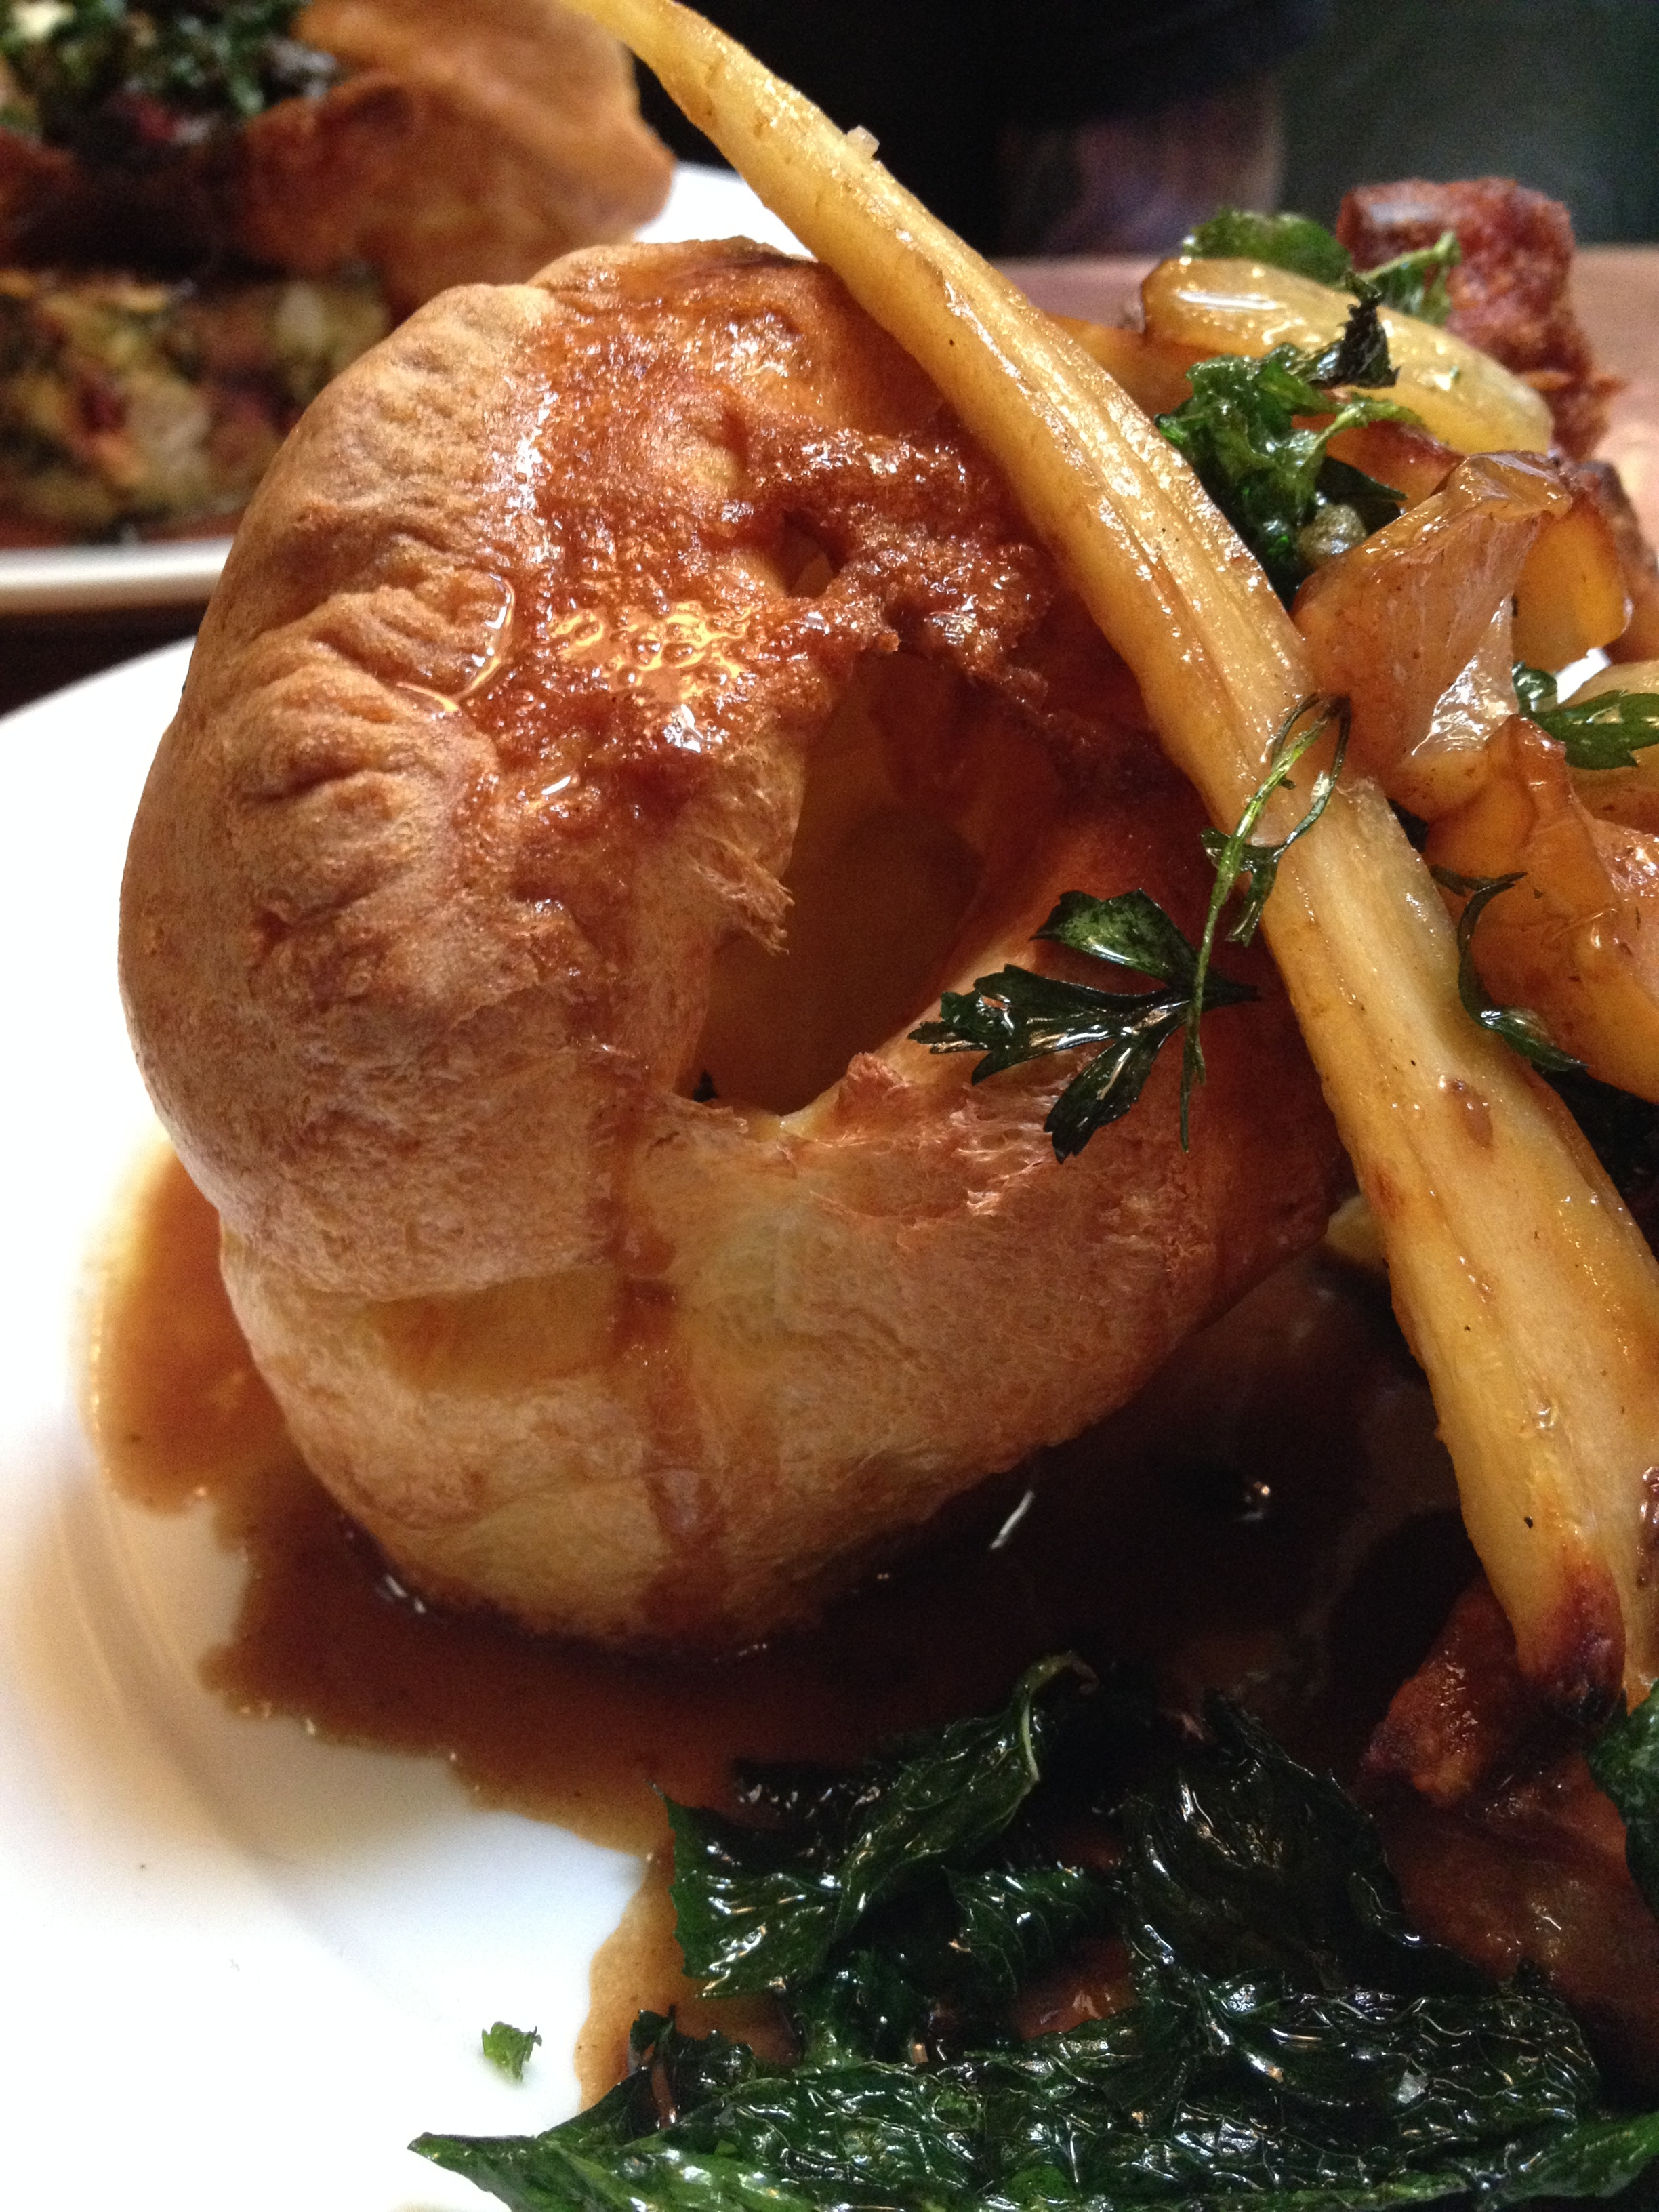 Sunday Roast Slow-Roasted Pork Belly with Caramelized Apples & Parsnips, accompanied by stuffing, roasted potatoes, Yorkshire pudding, and gravy.